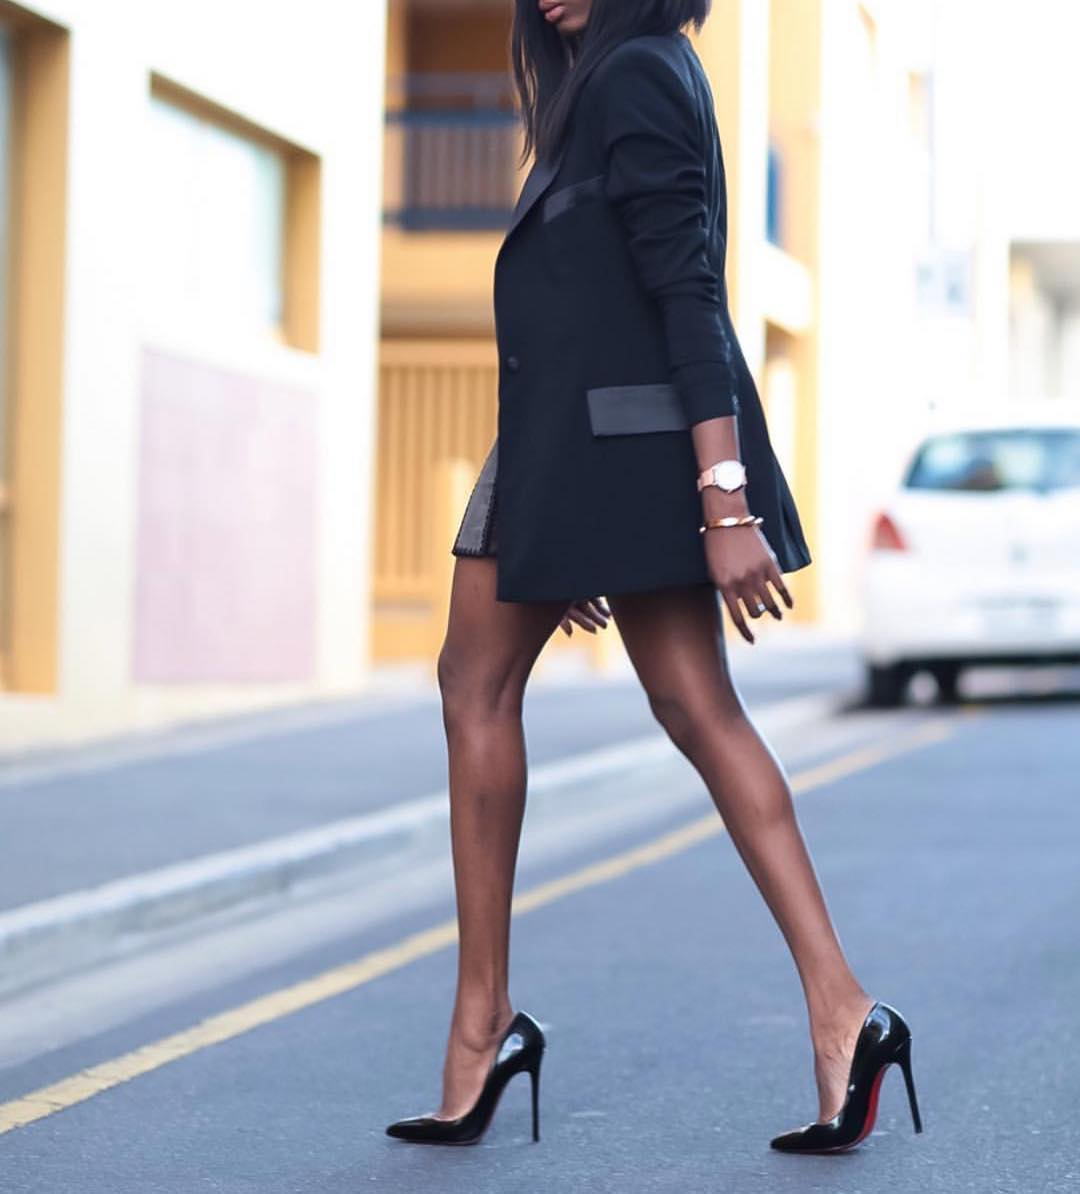 Long Black Blazer And Glossy Black Heeled Pumps For Office Style Chics 2020